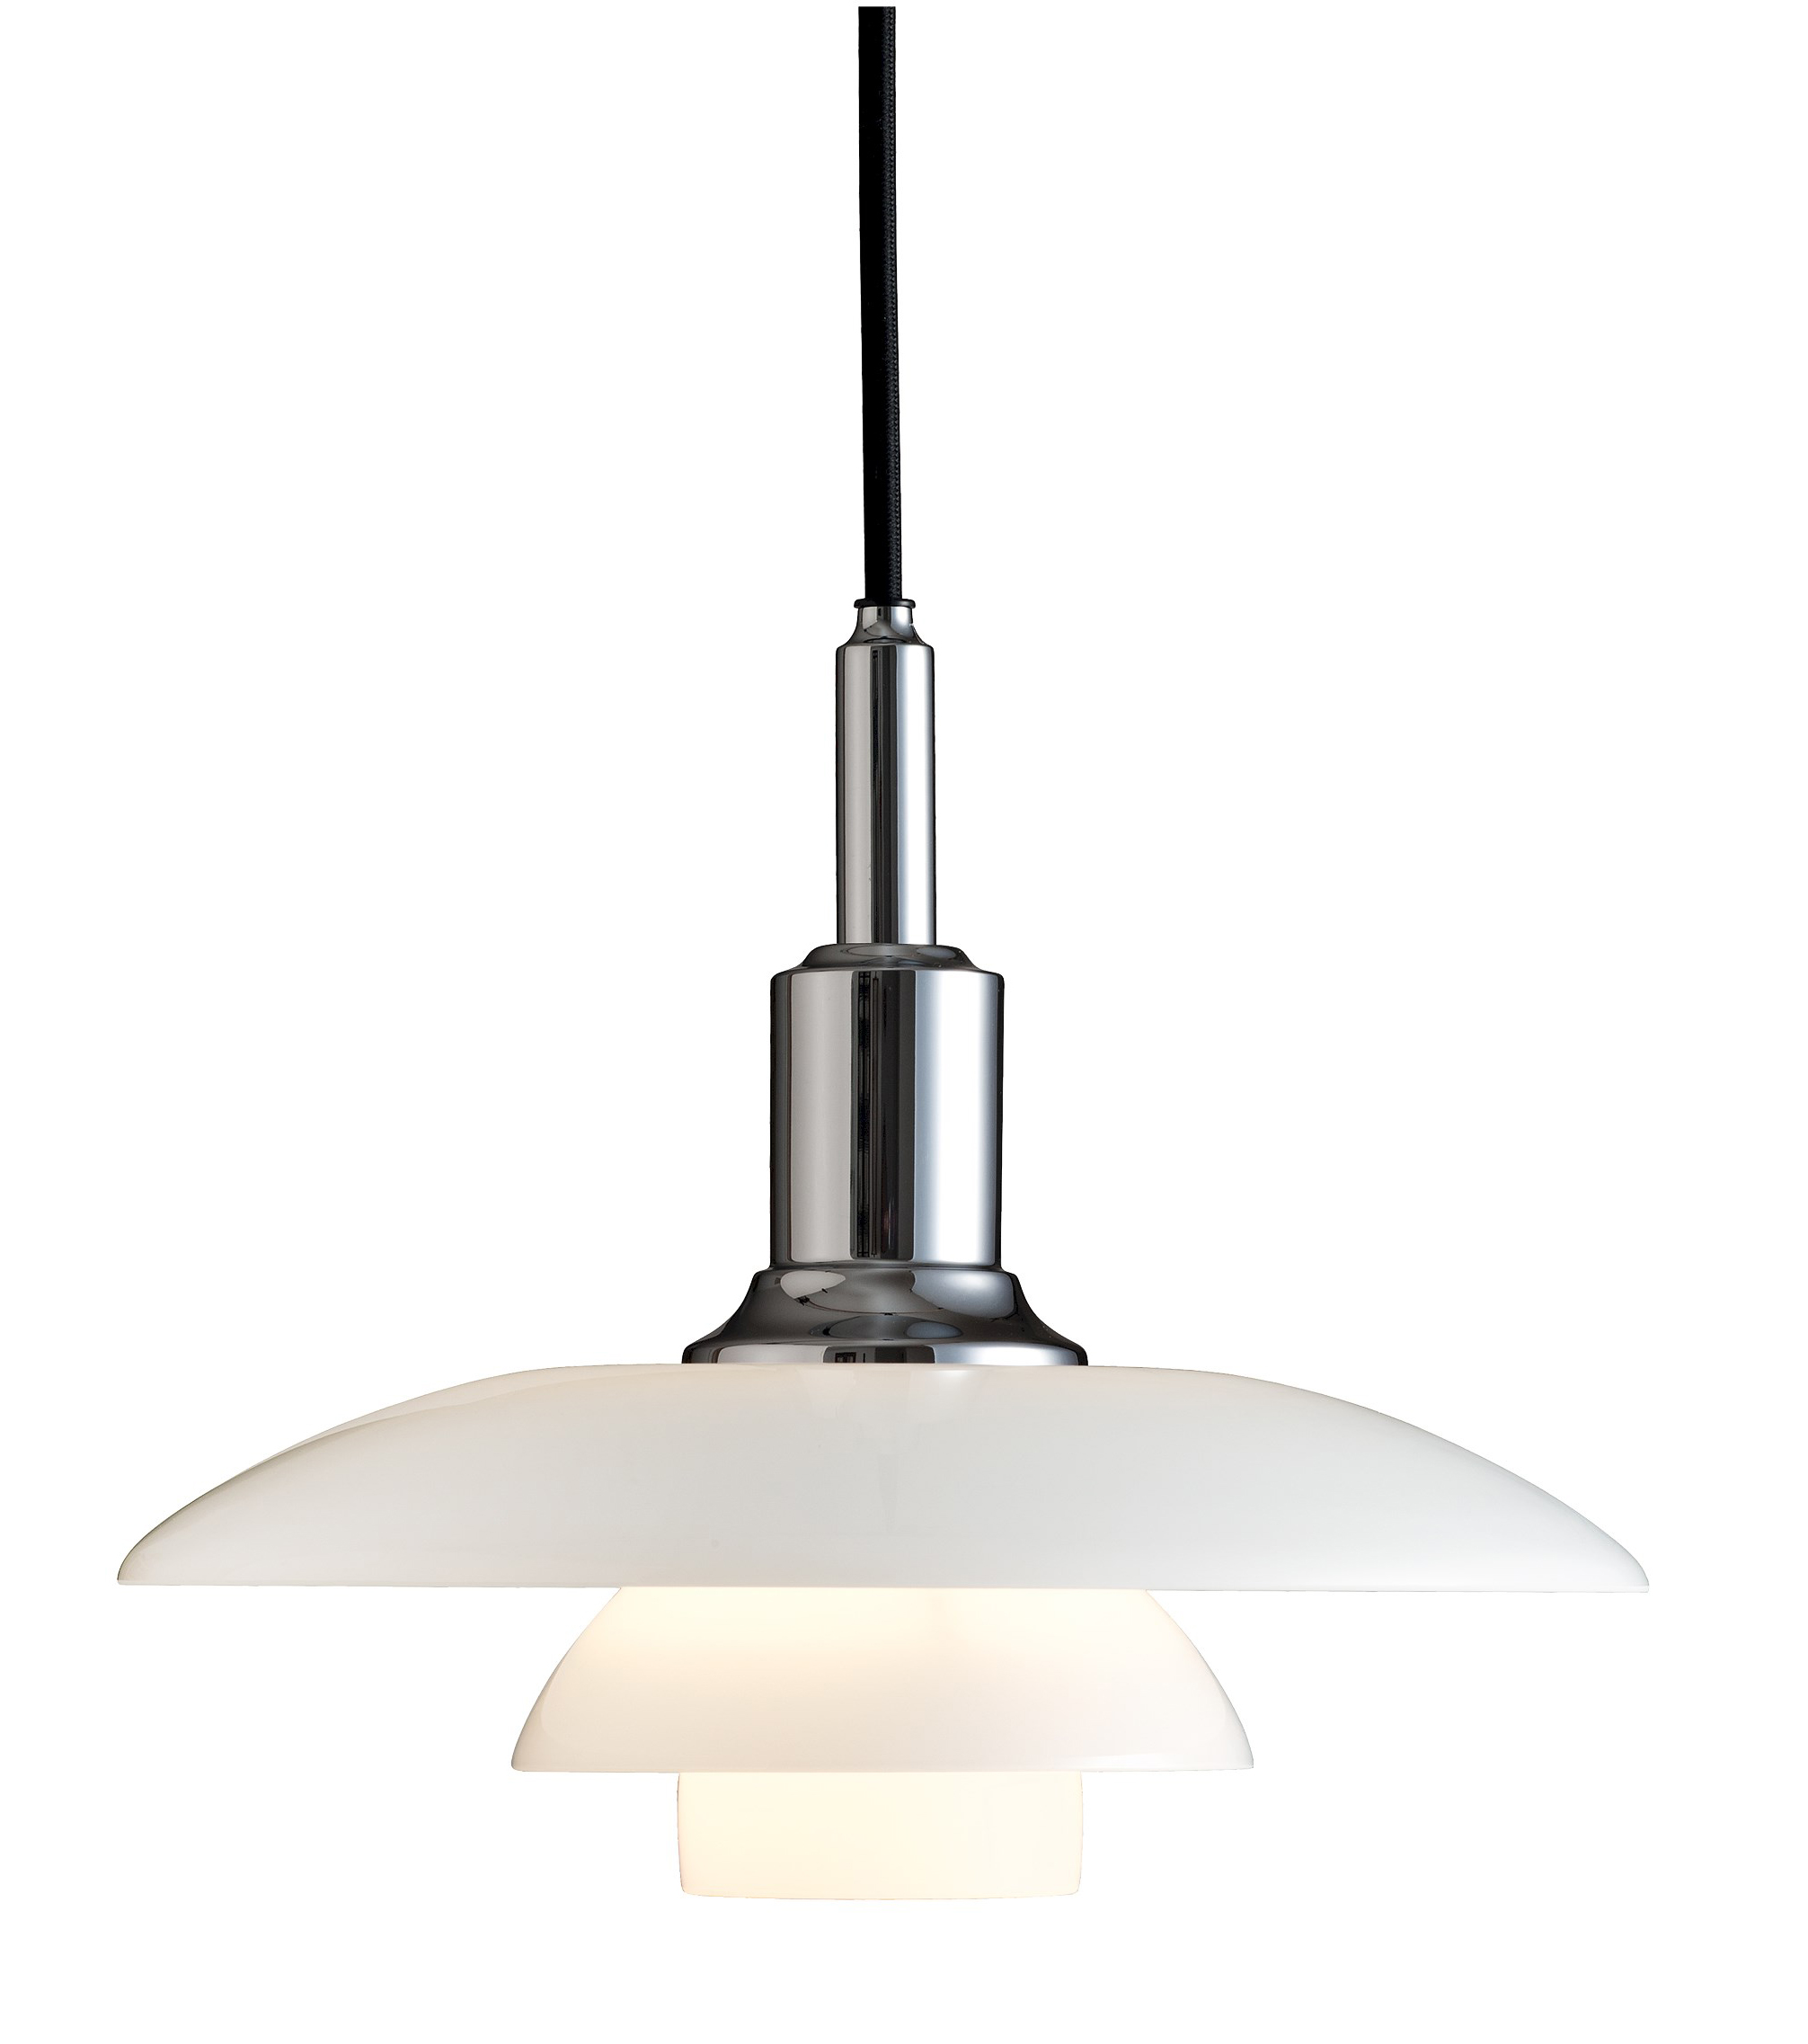 Louis Poulsen Ph 3 2 White Glass Pendant Light